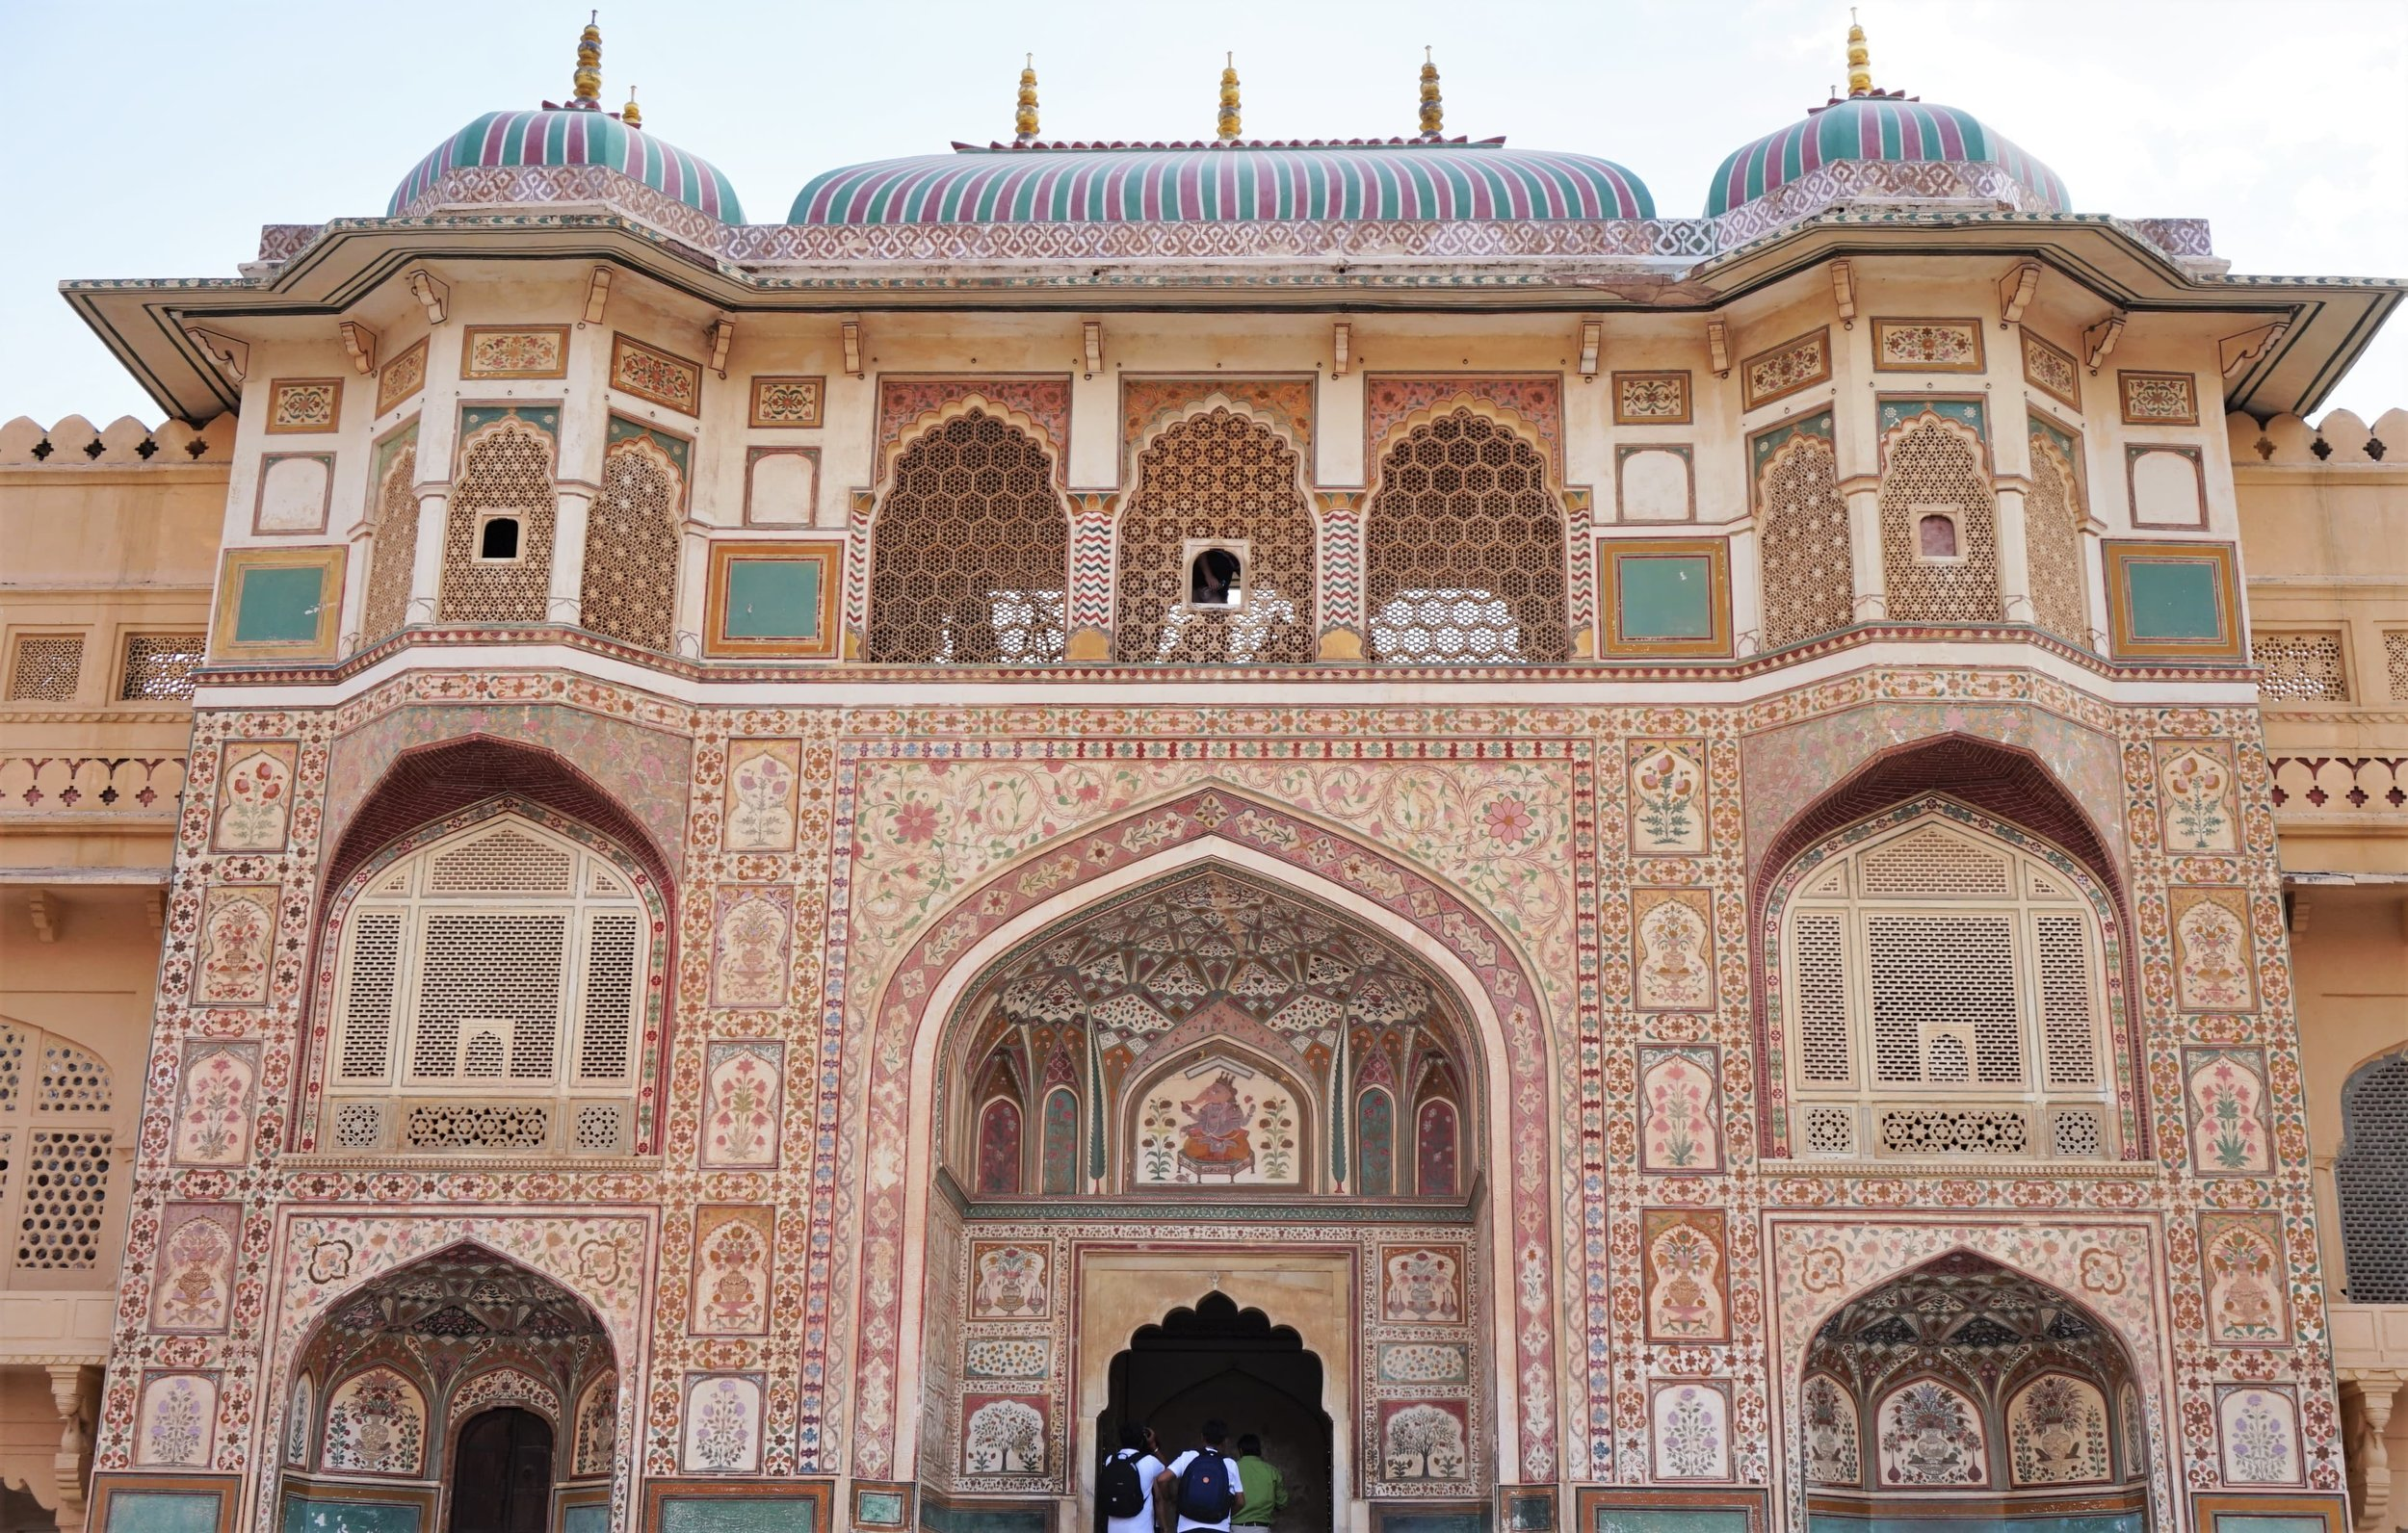 One of the best things to do in Rajasthan, India.